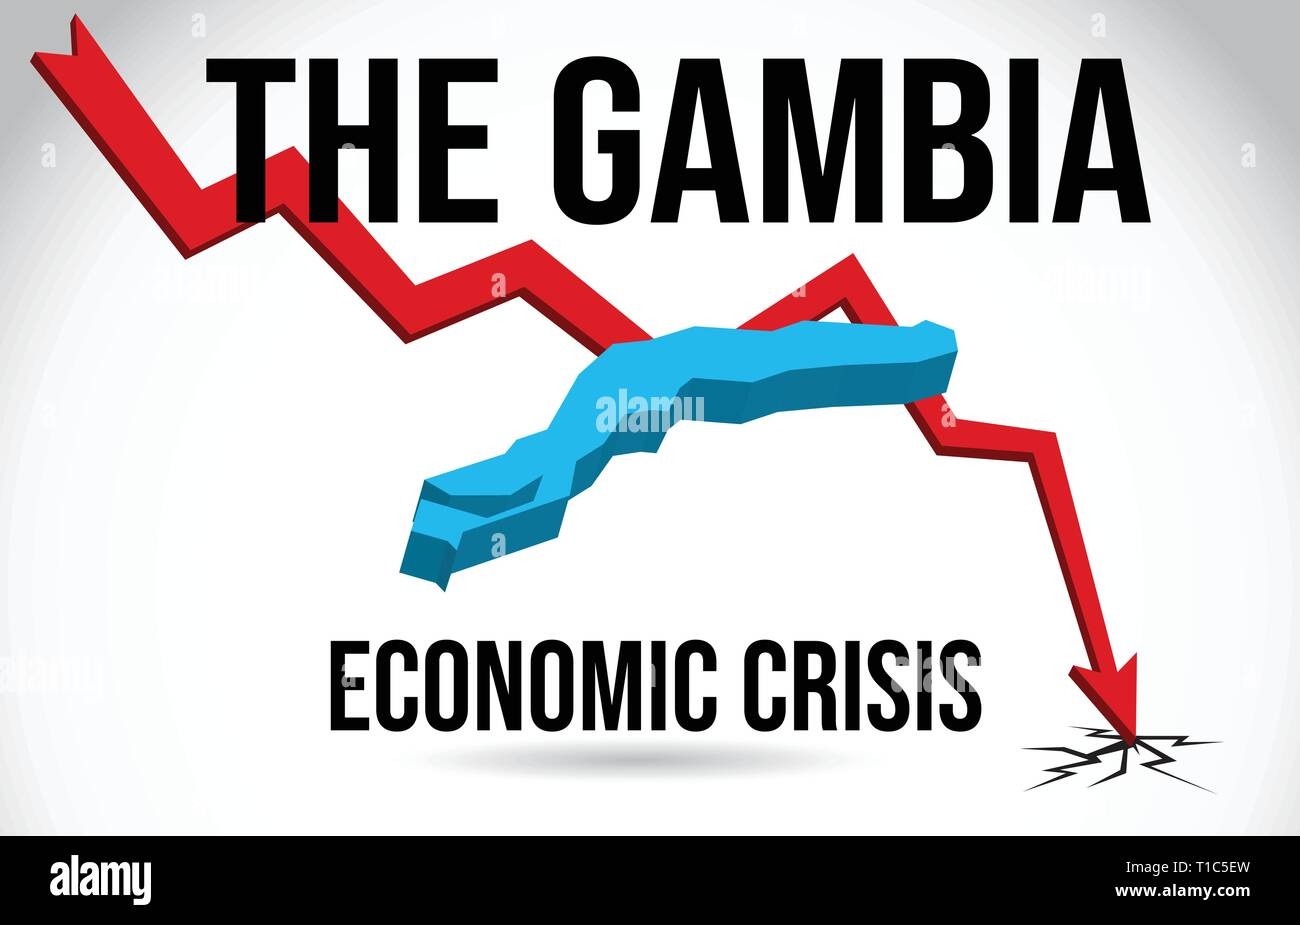 The Gambia Map Financial Crisis Economic Collapse Market Crash Global Meltdown Vector Illustration. - Stock Vector